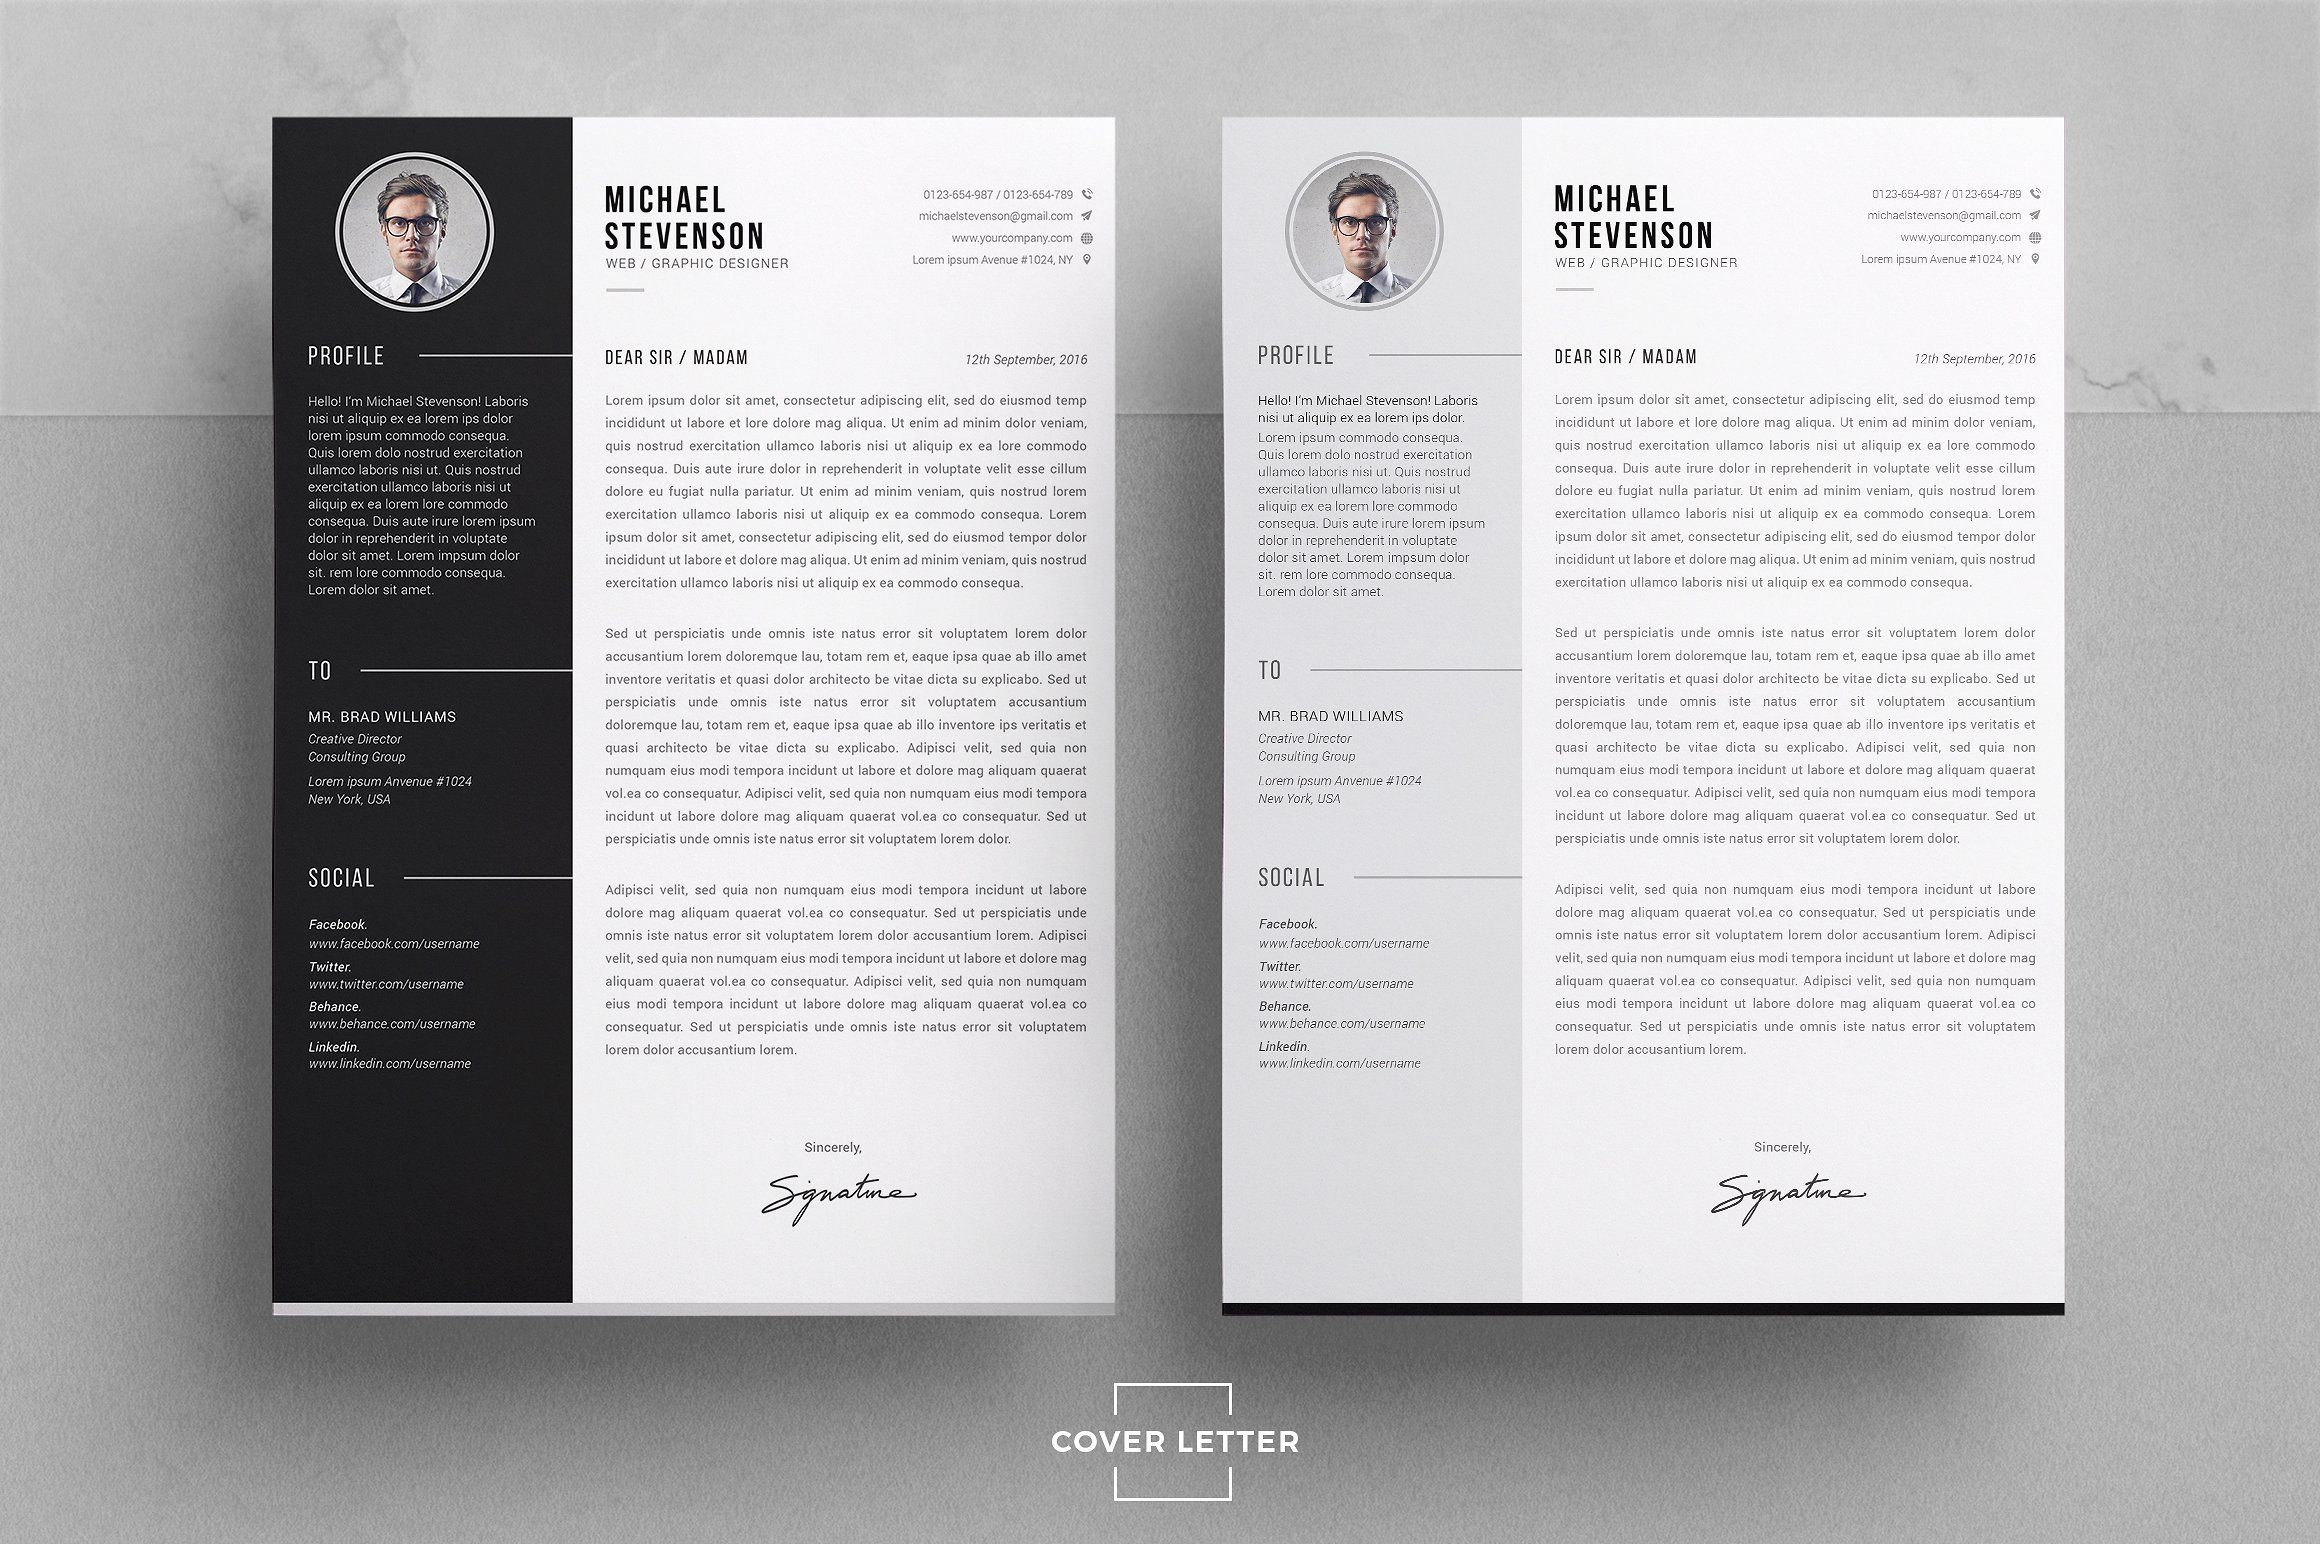 Resume Cv Ms Quickly Easy Letter Word Resume Cv Font Guide